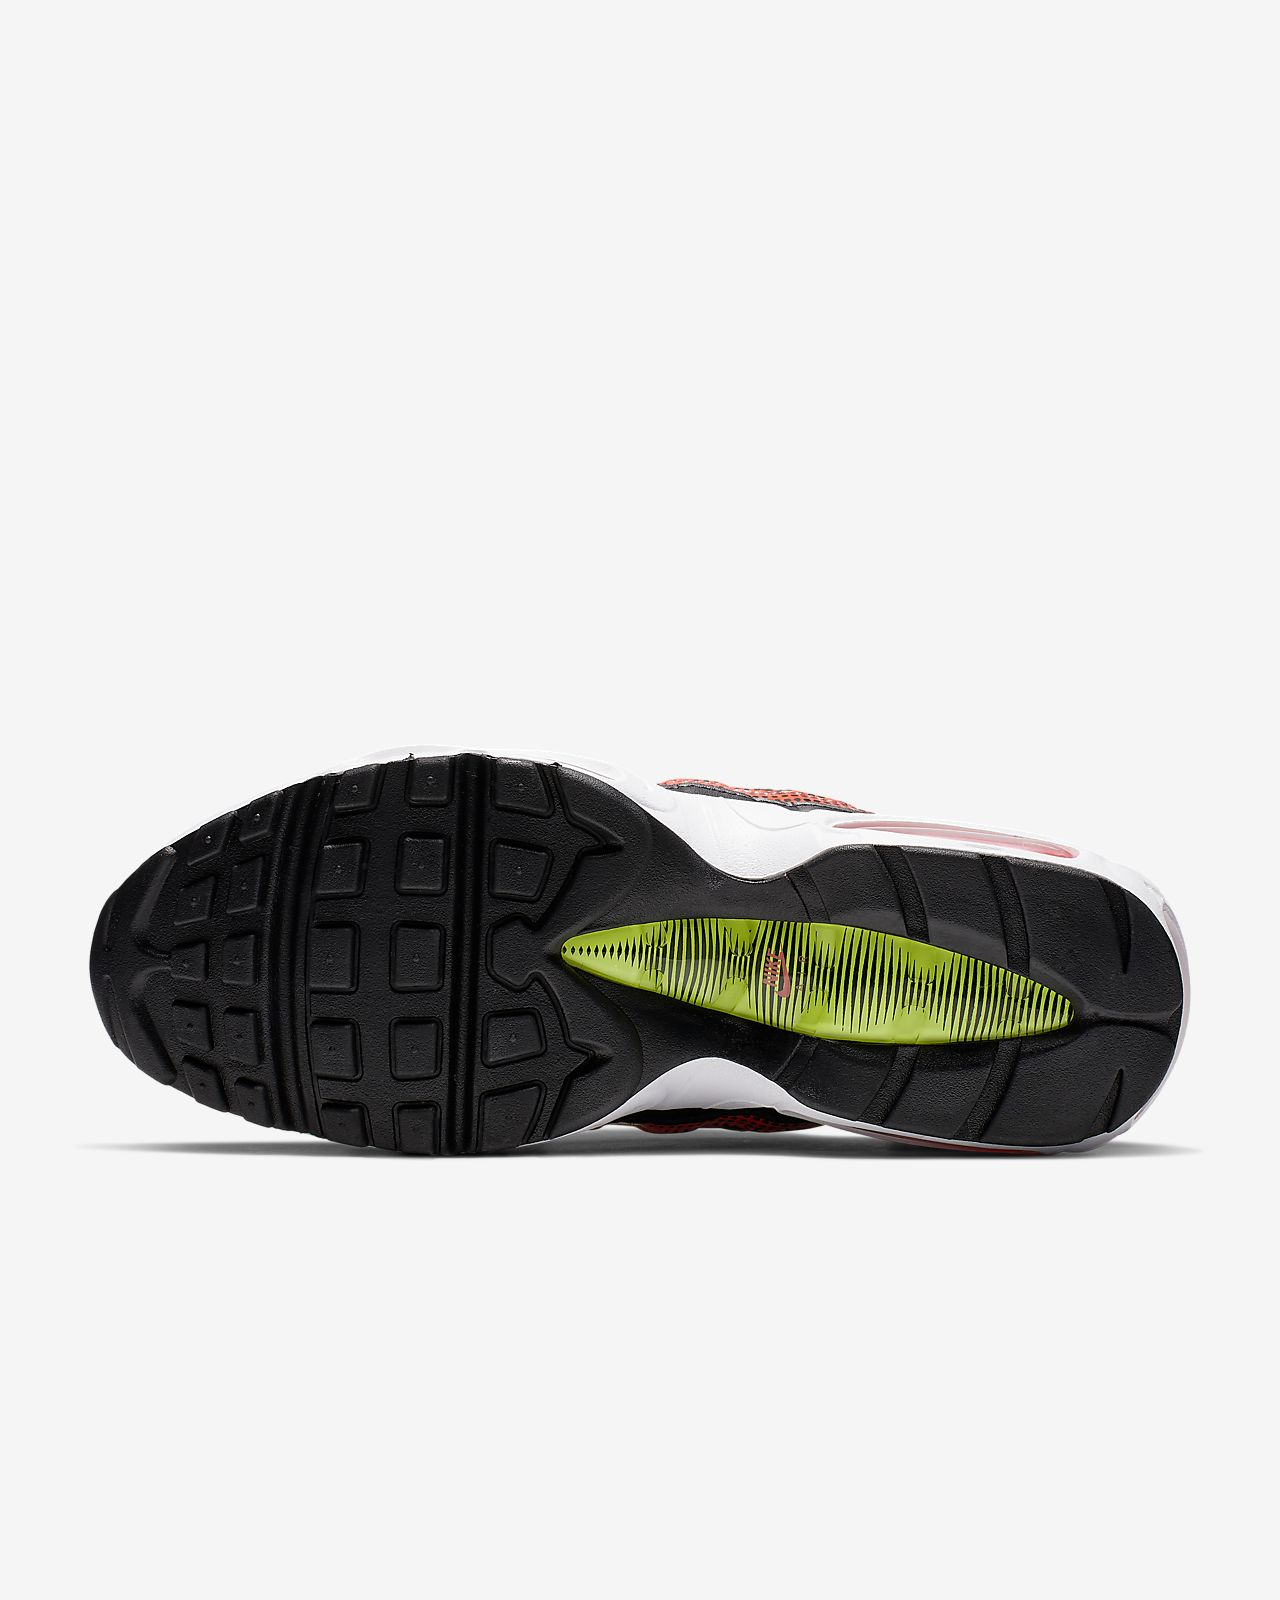 hot sale online 4d368 b43e6 ... Nike Air Max 95 SE Men s Shoe